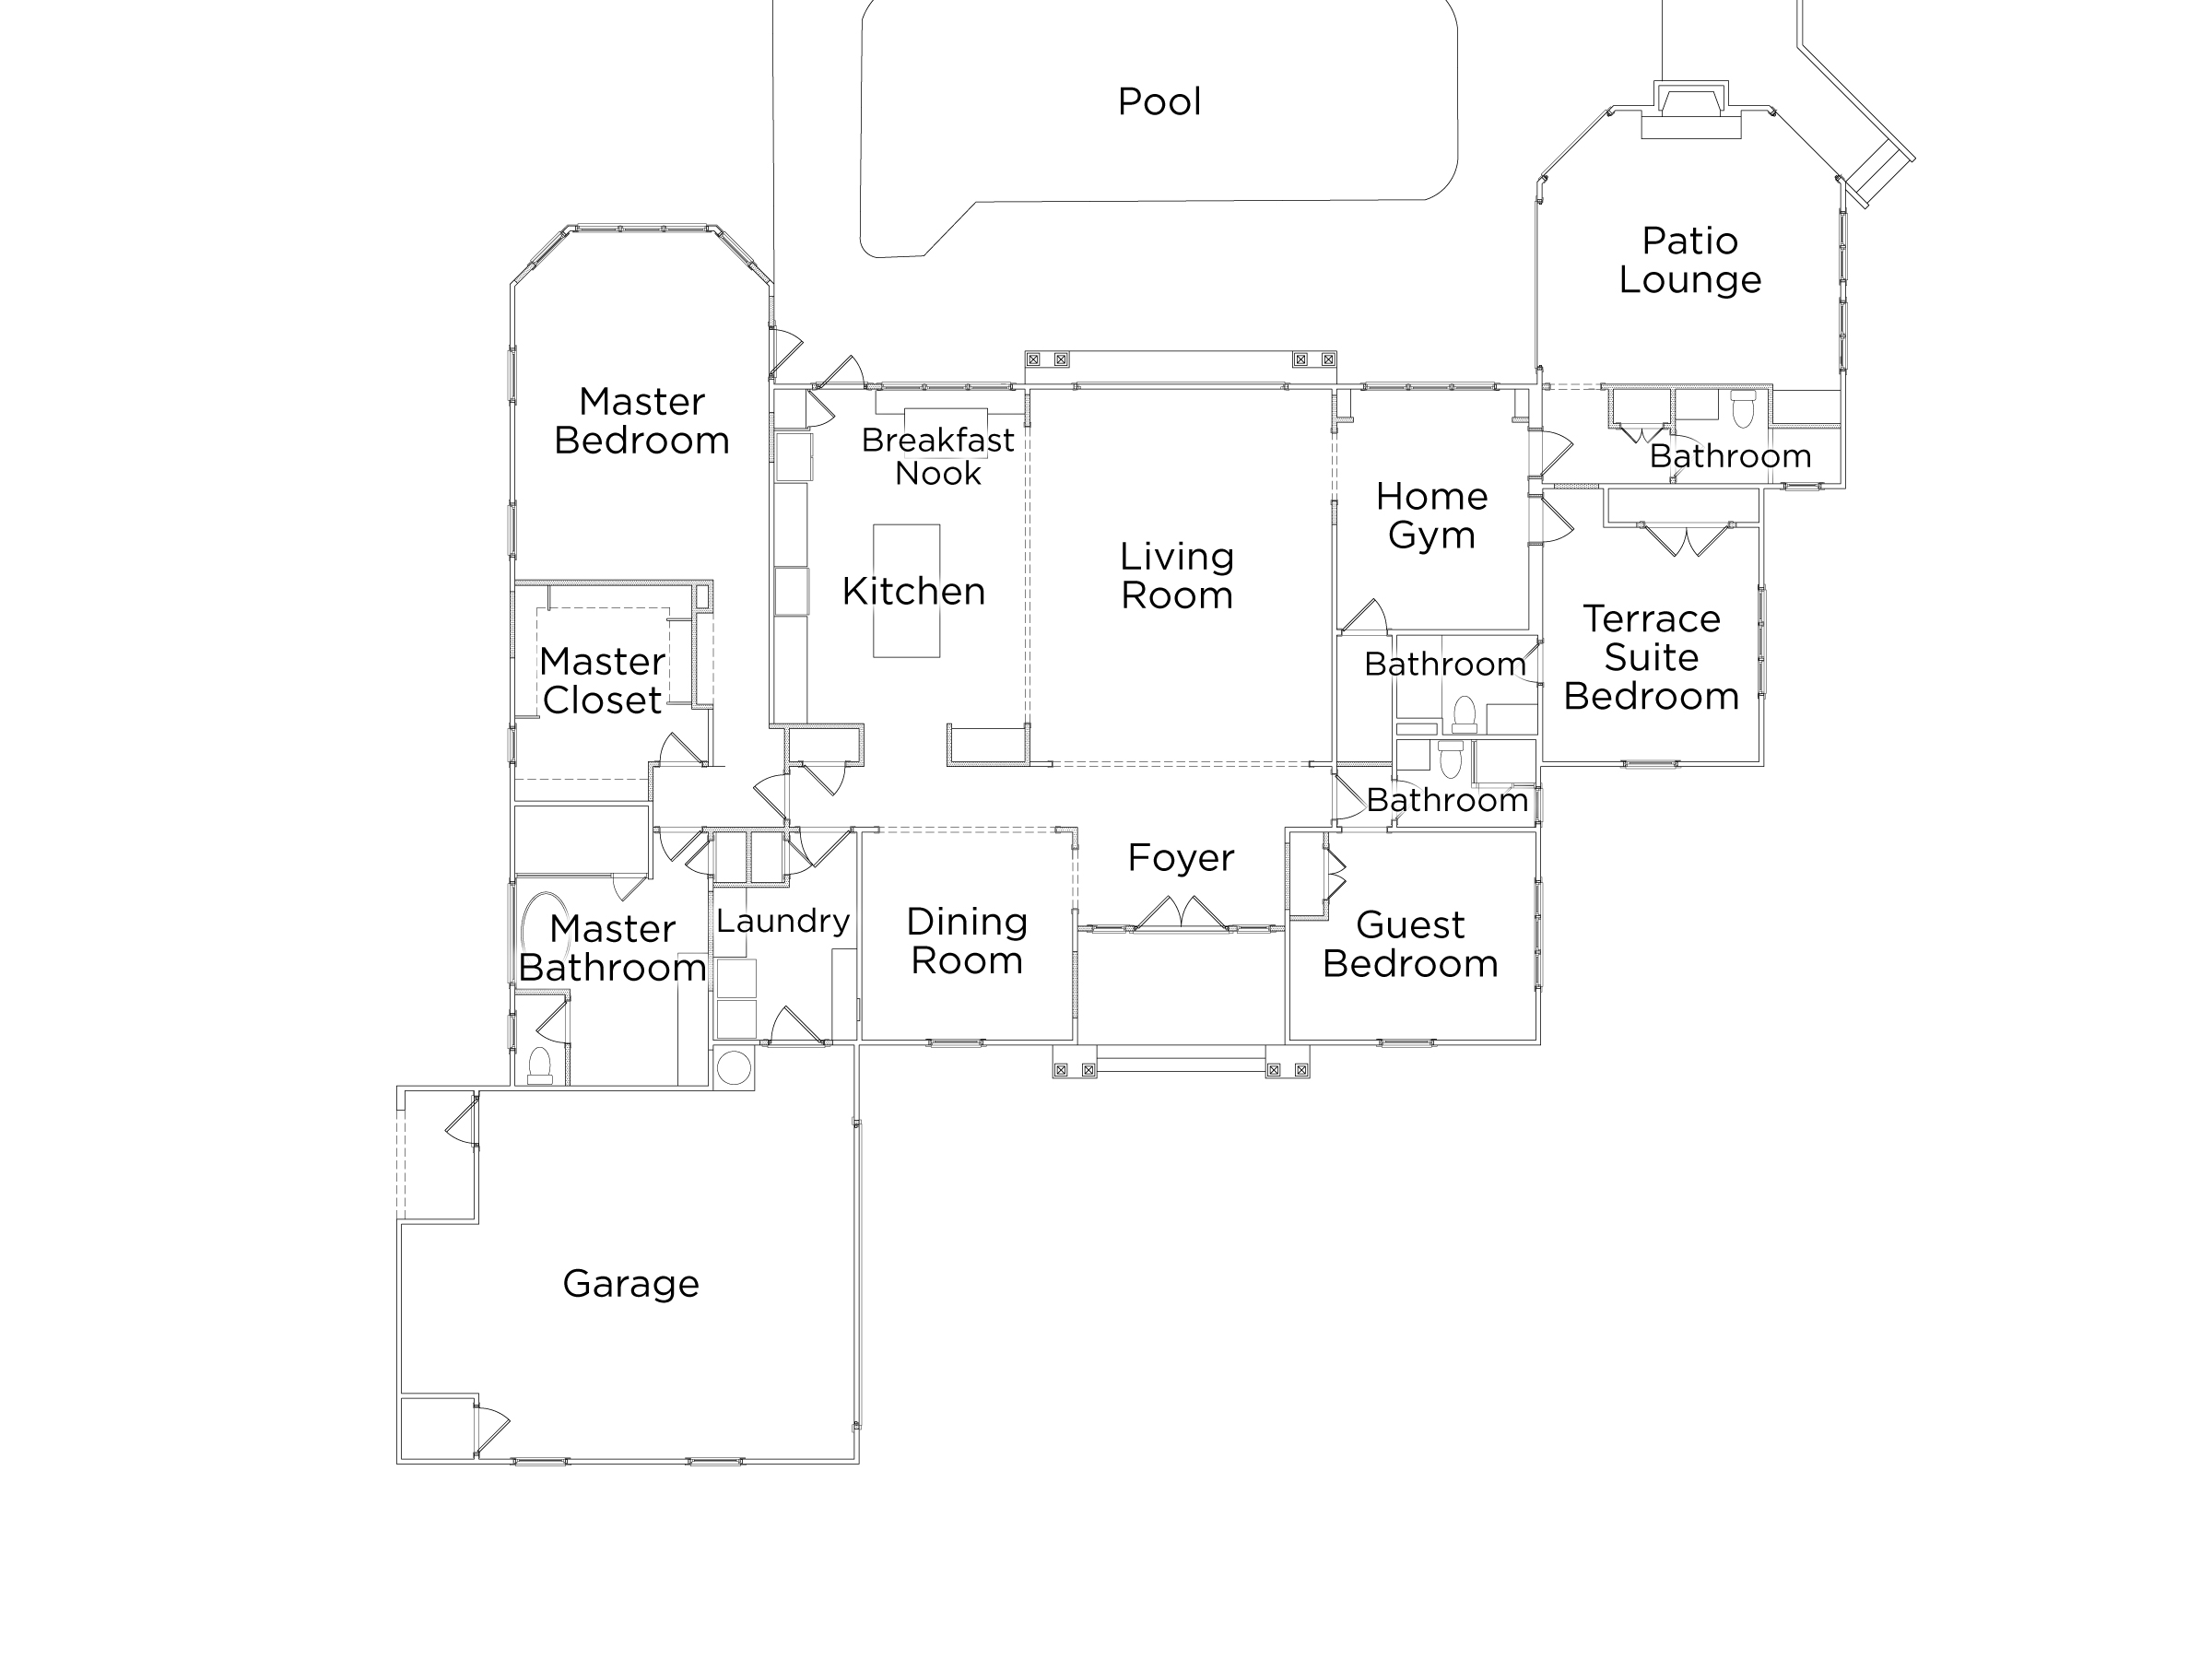 Discover The Floor Plan For HGTV Dream Home 2017